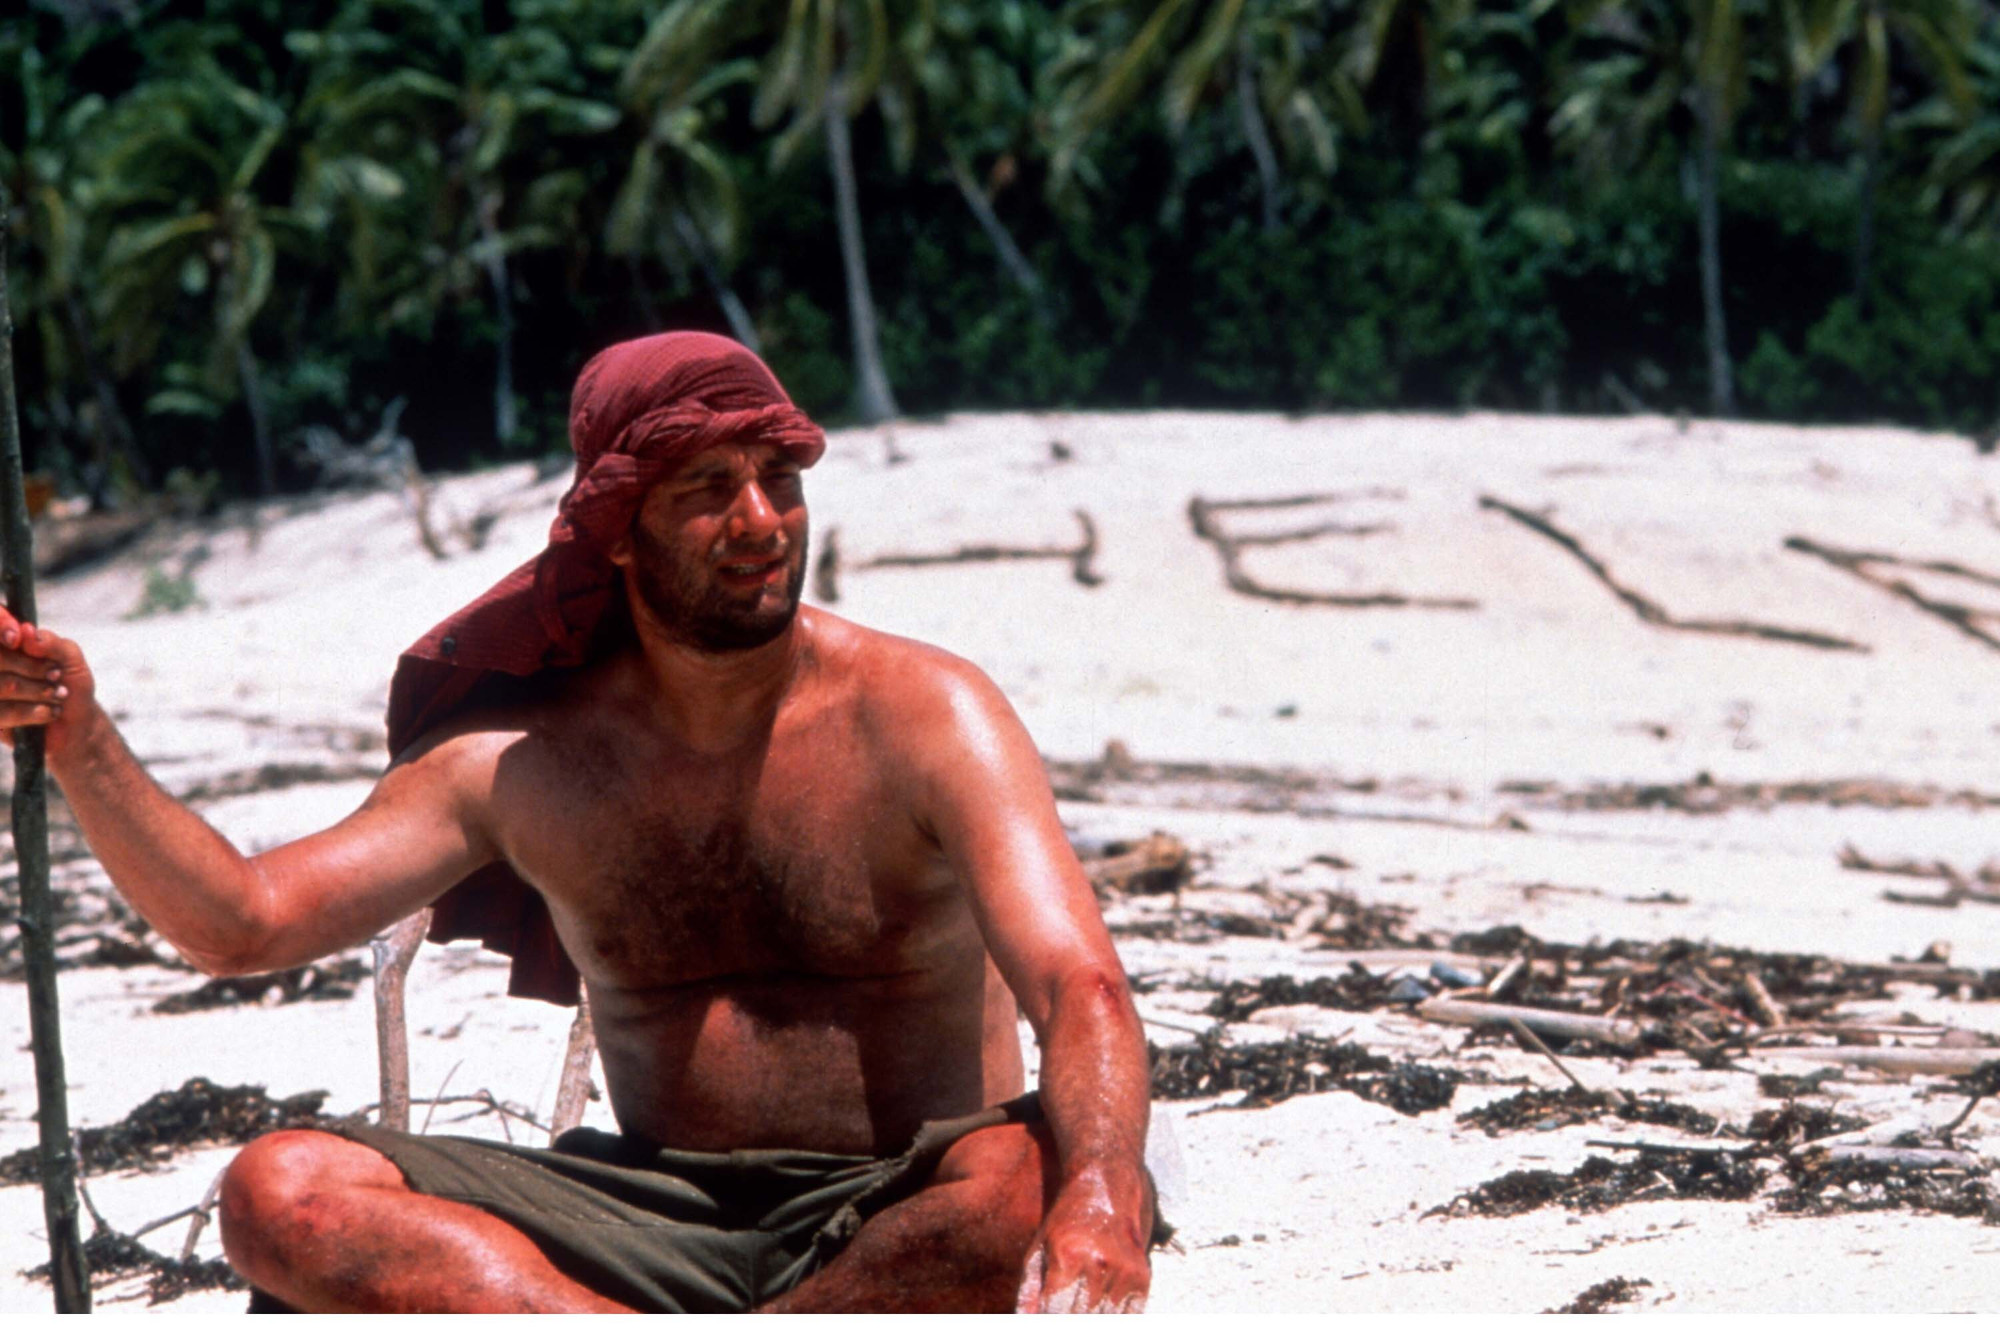 the movie cast away directed by robert zemeckis Film october 14 & 12 cast away 2000 usa directed by robert zemeckis 143  min screenplay by william broyles, jr with tom hanks,.